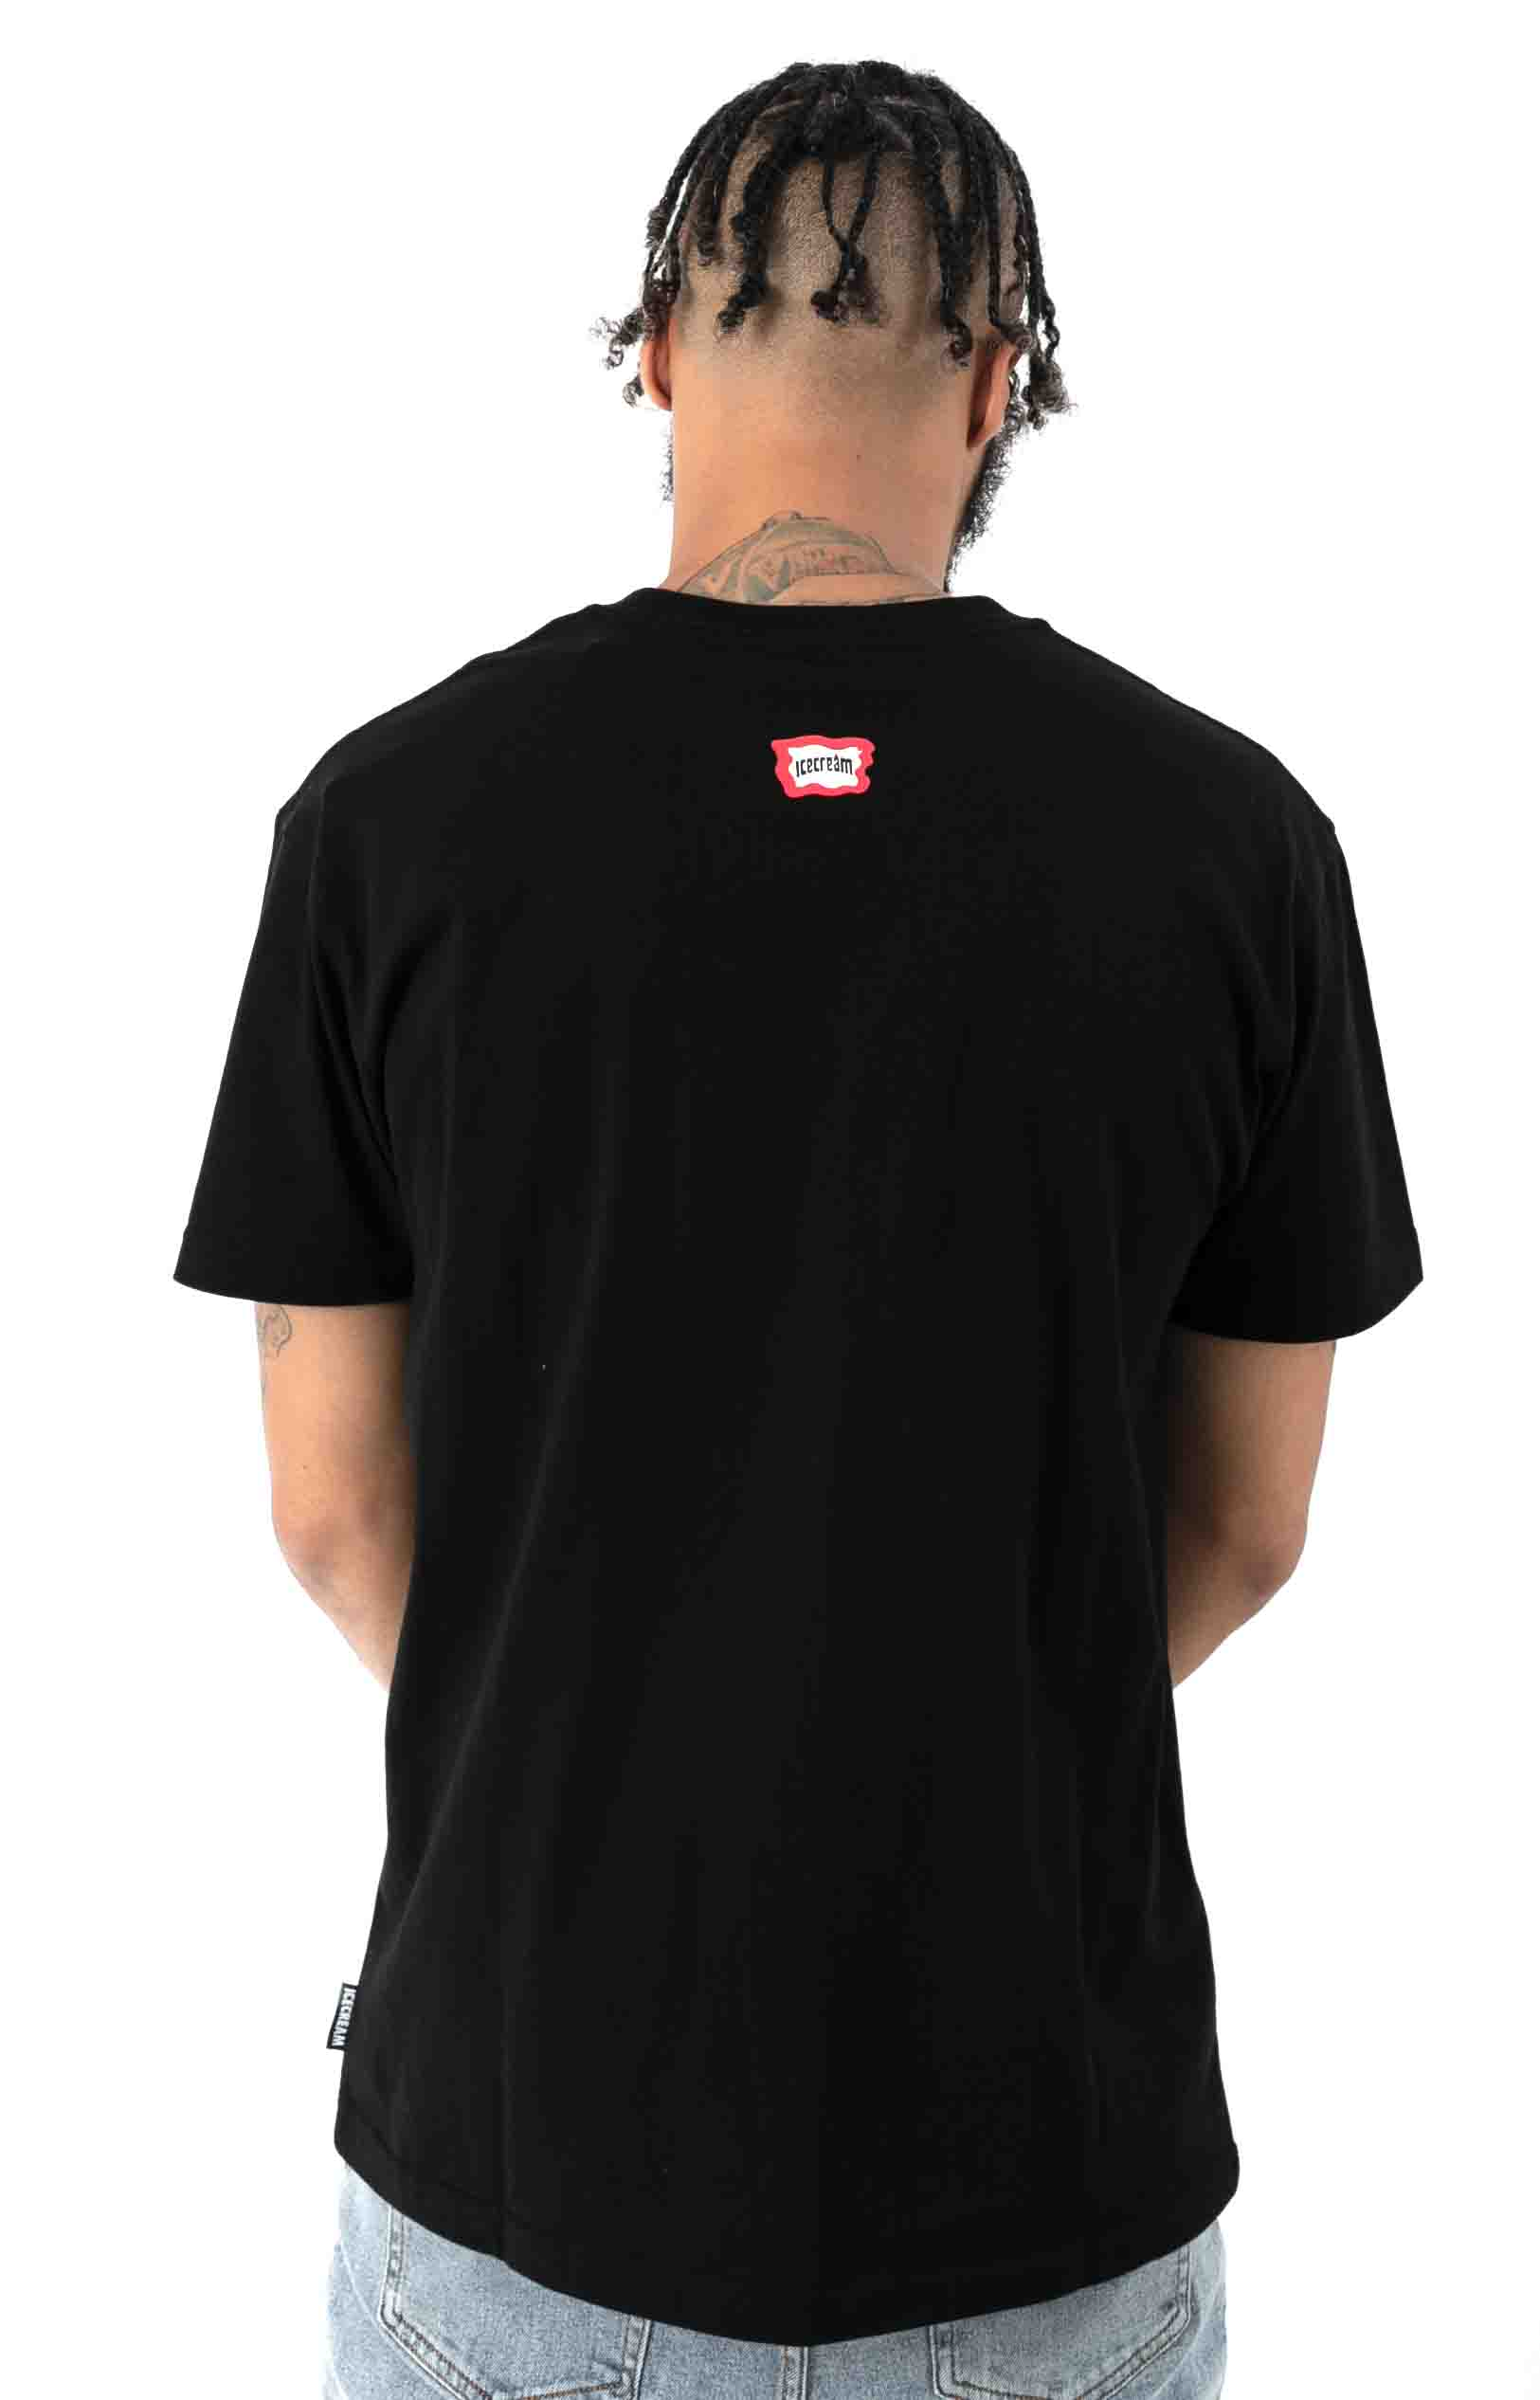 Wrench T-Shirt - Black 3